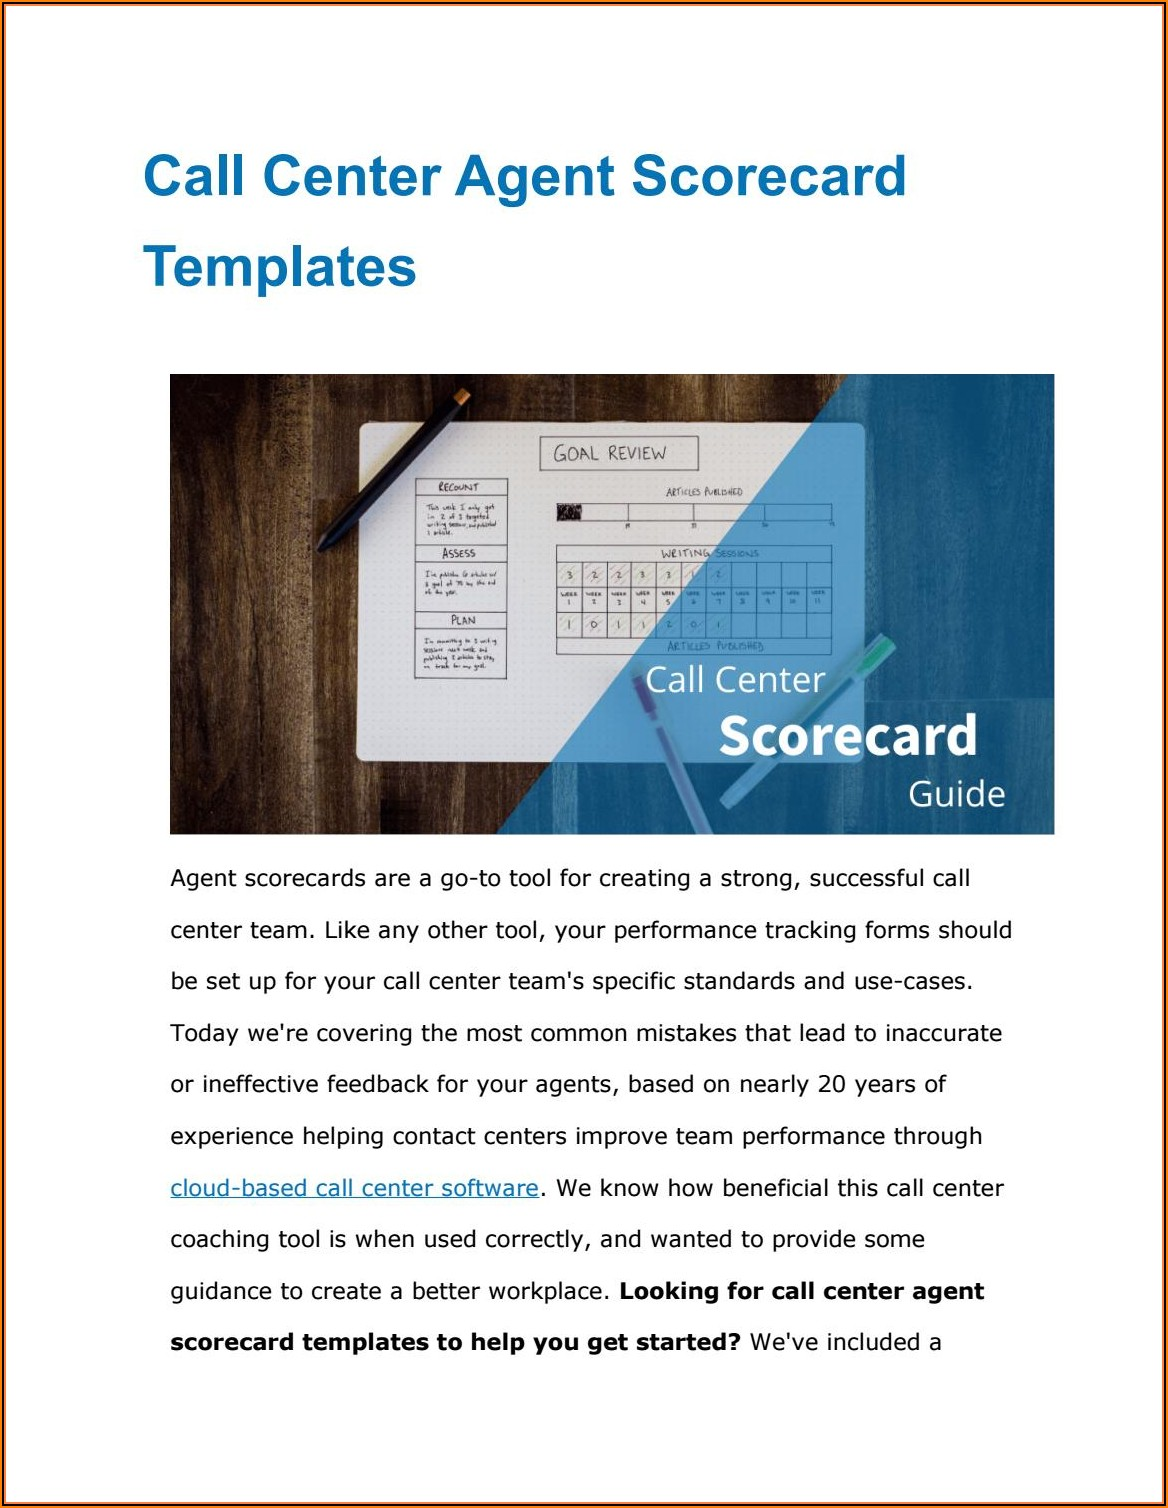 Call Center Agent Scorecard Template